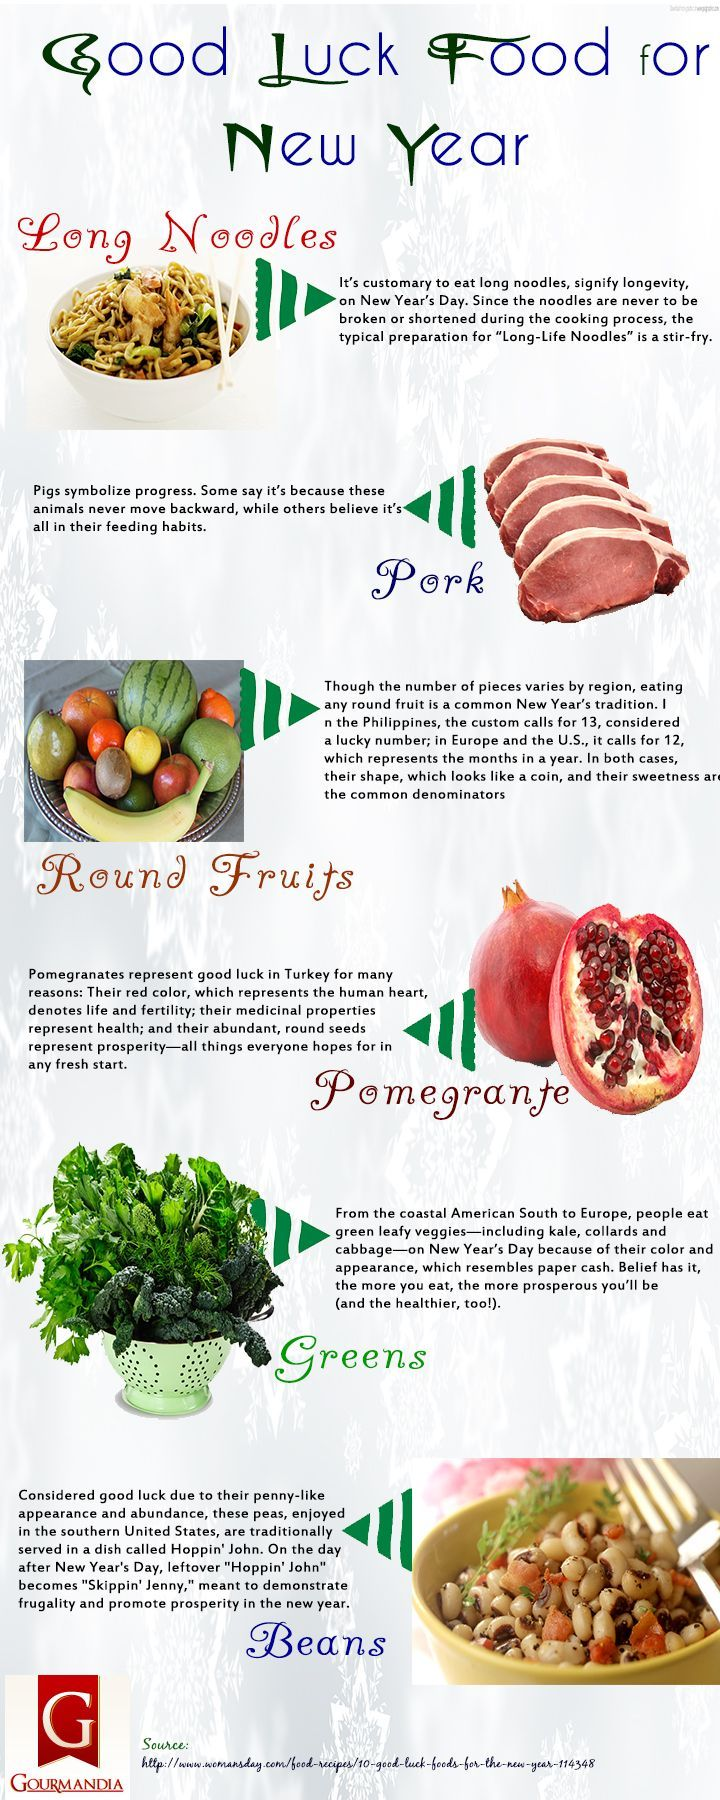 Good Luck Food For New Year Infographic Food Newyear Food Infographic Lucky Food New Years Day Meal